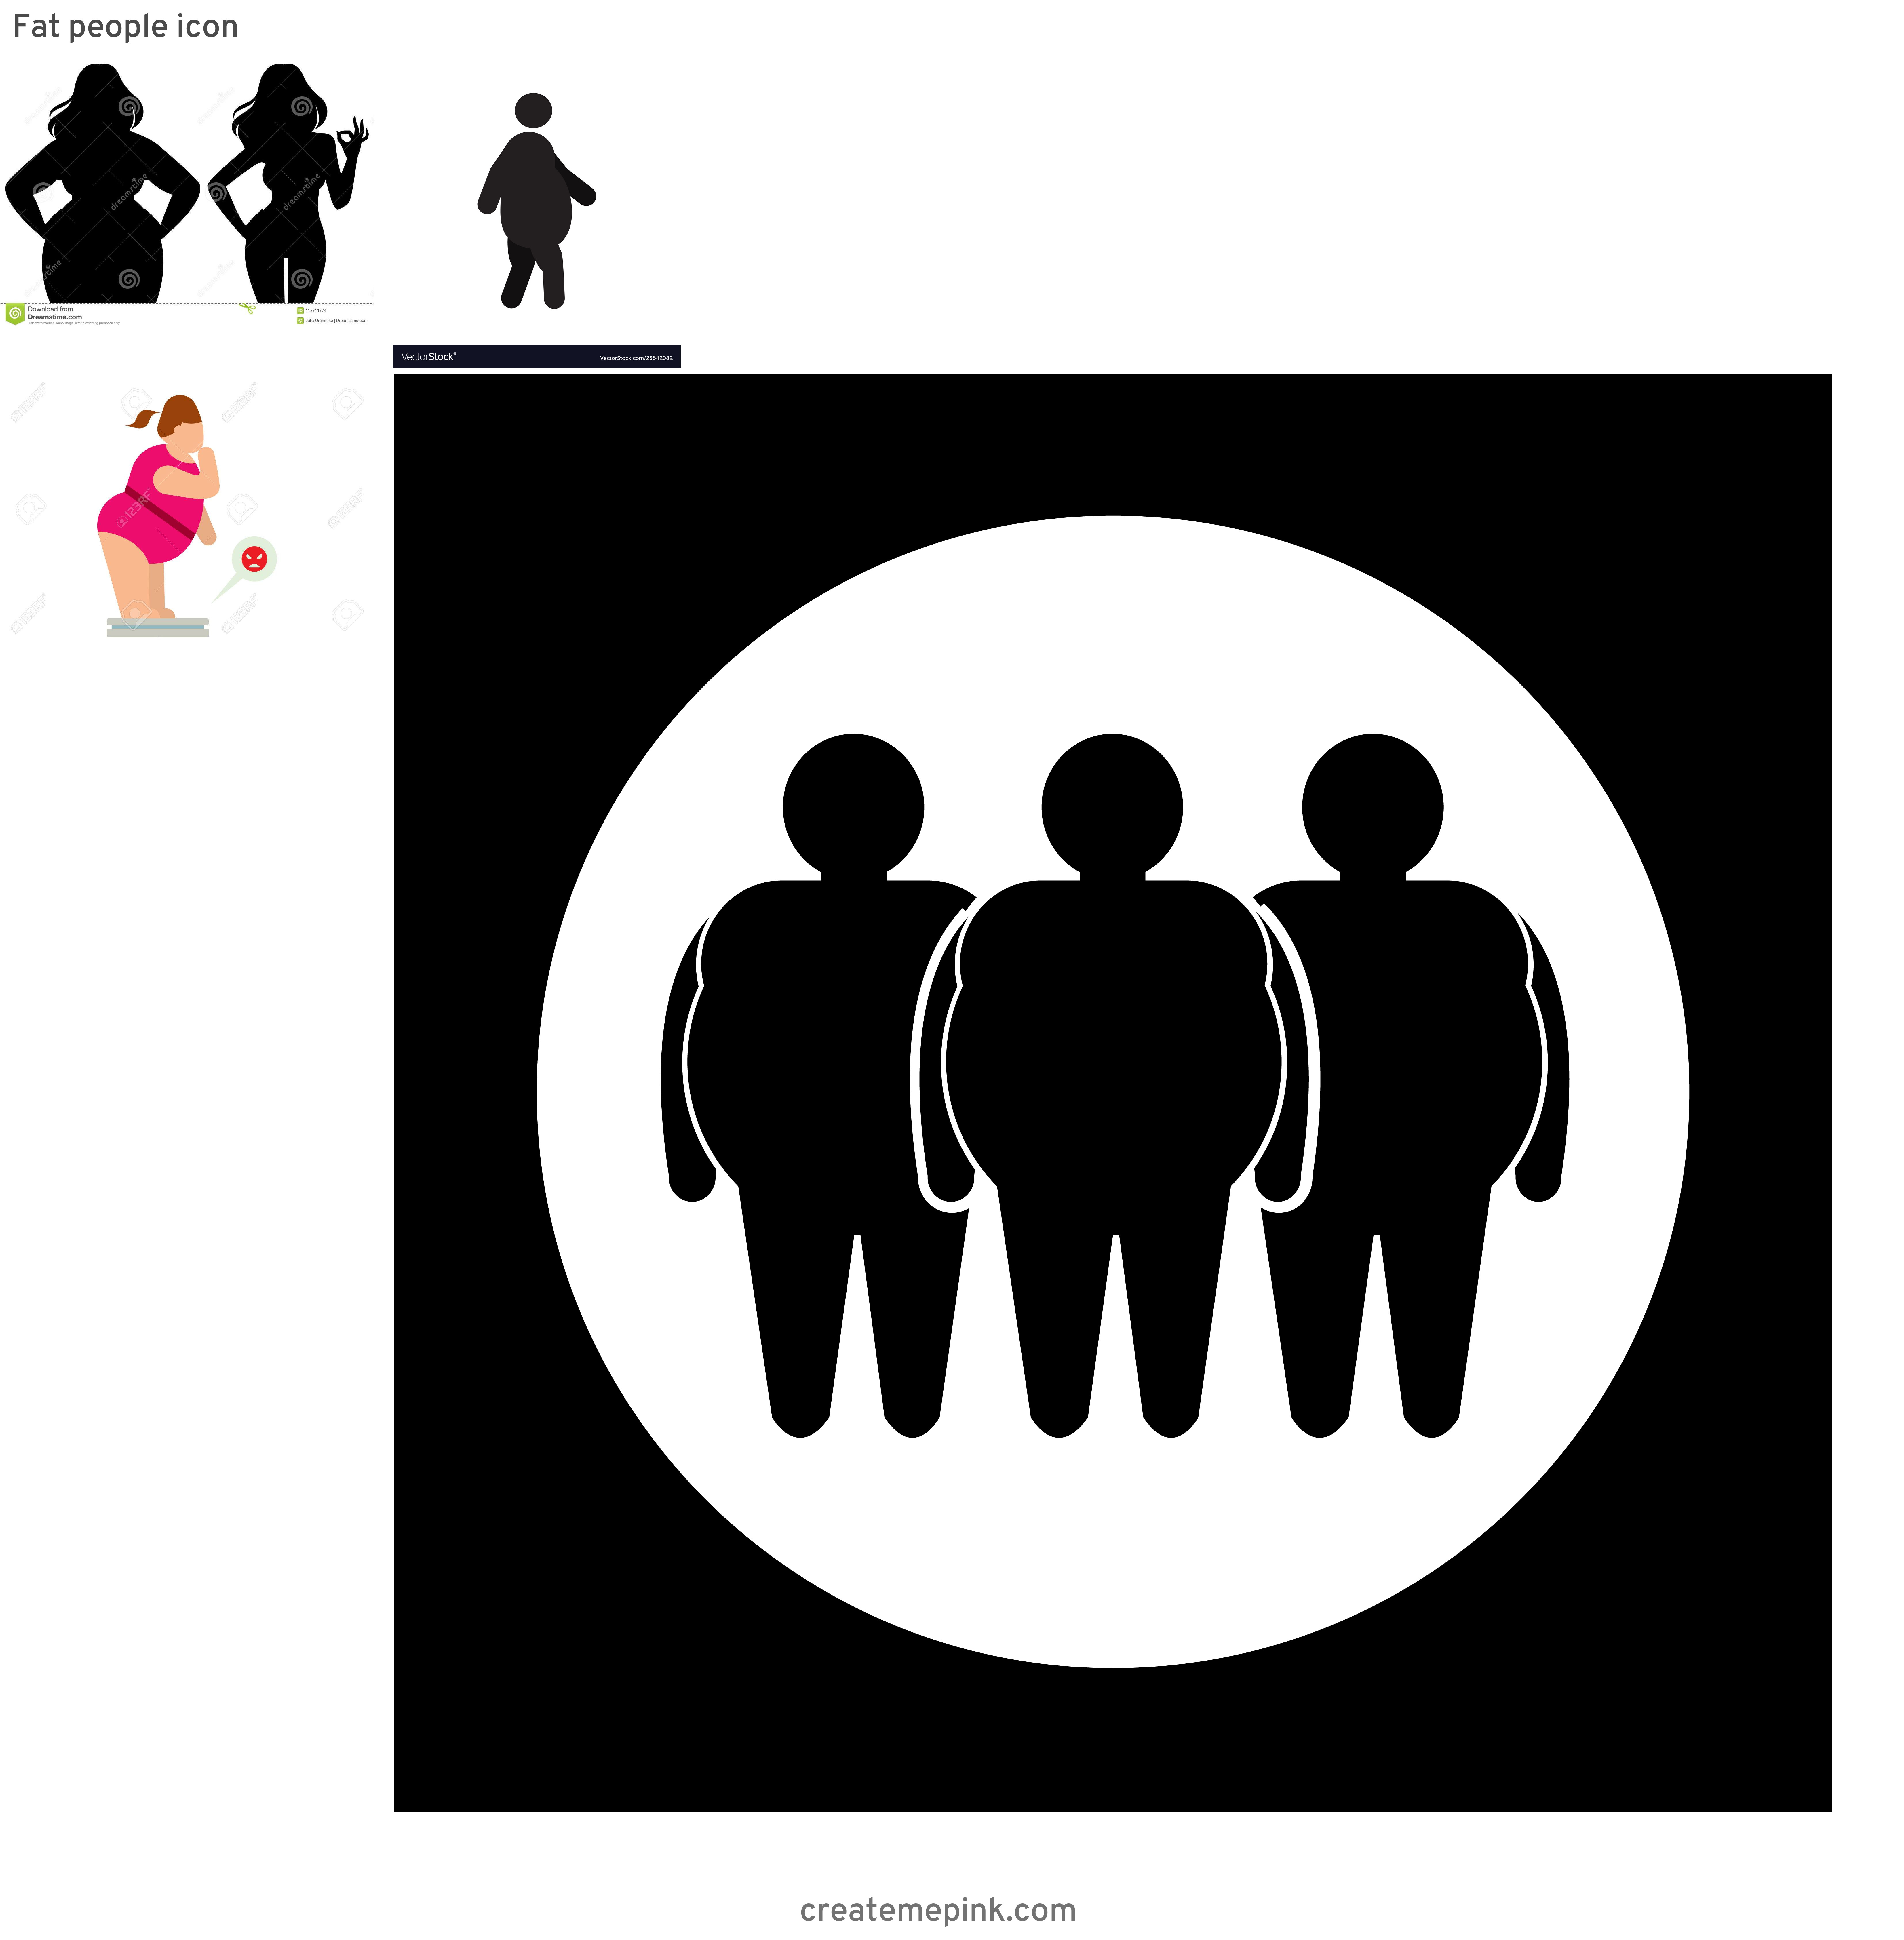 People Silhouette Vector Illustration Of Fat: Fat People Icon